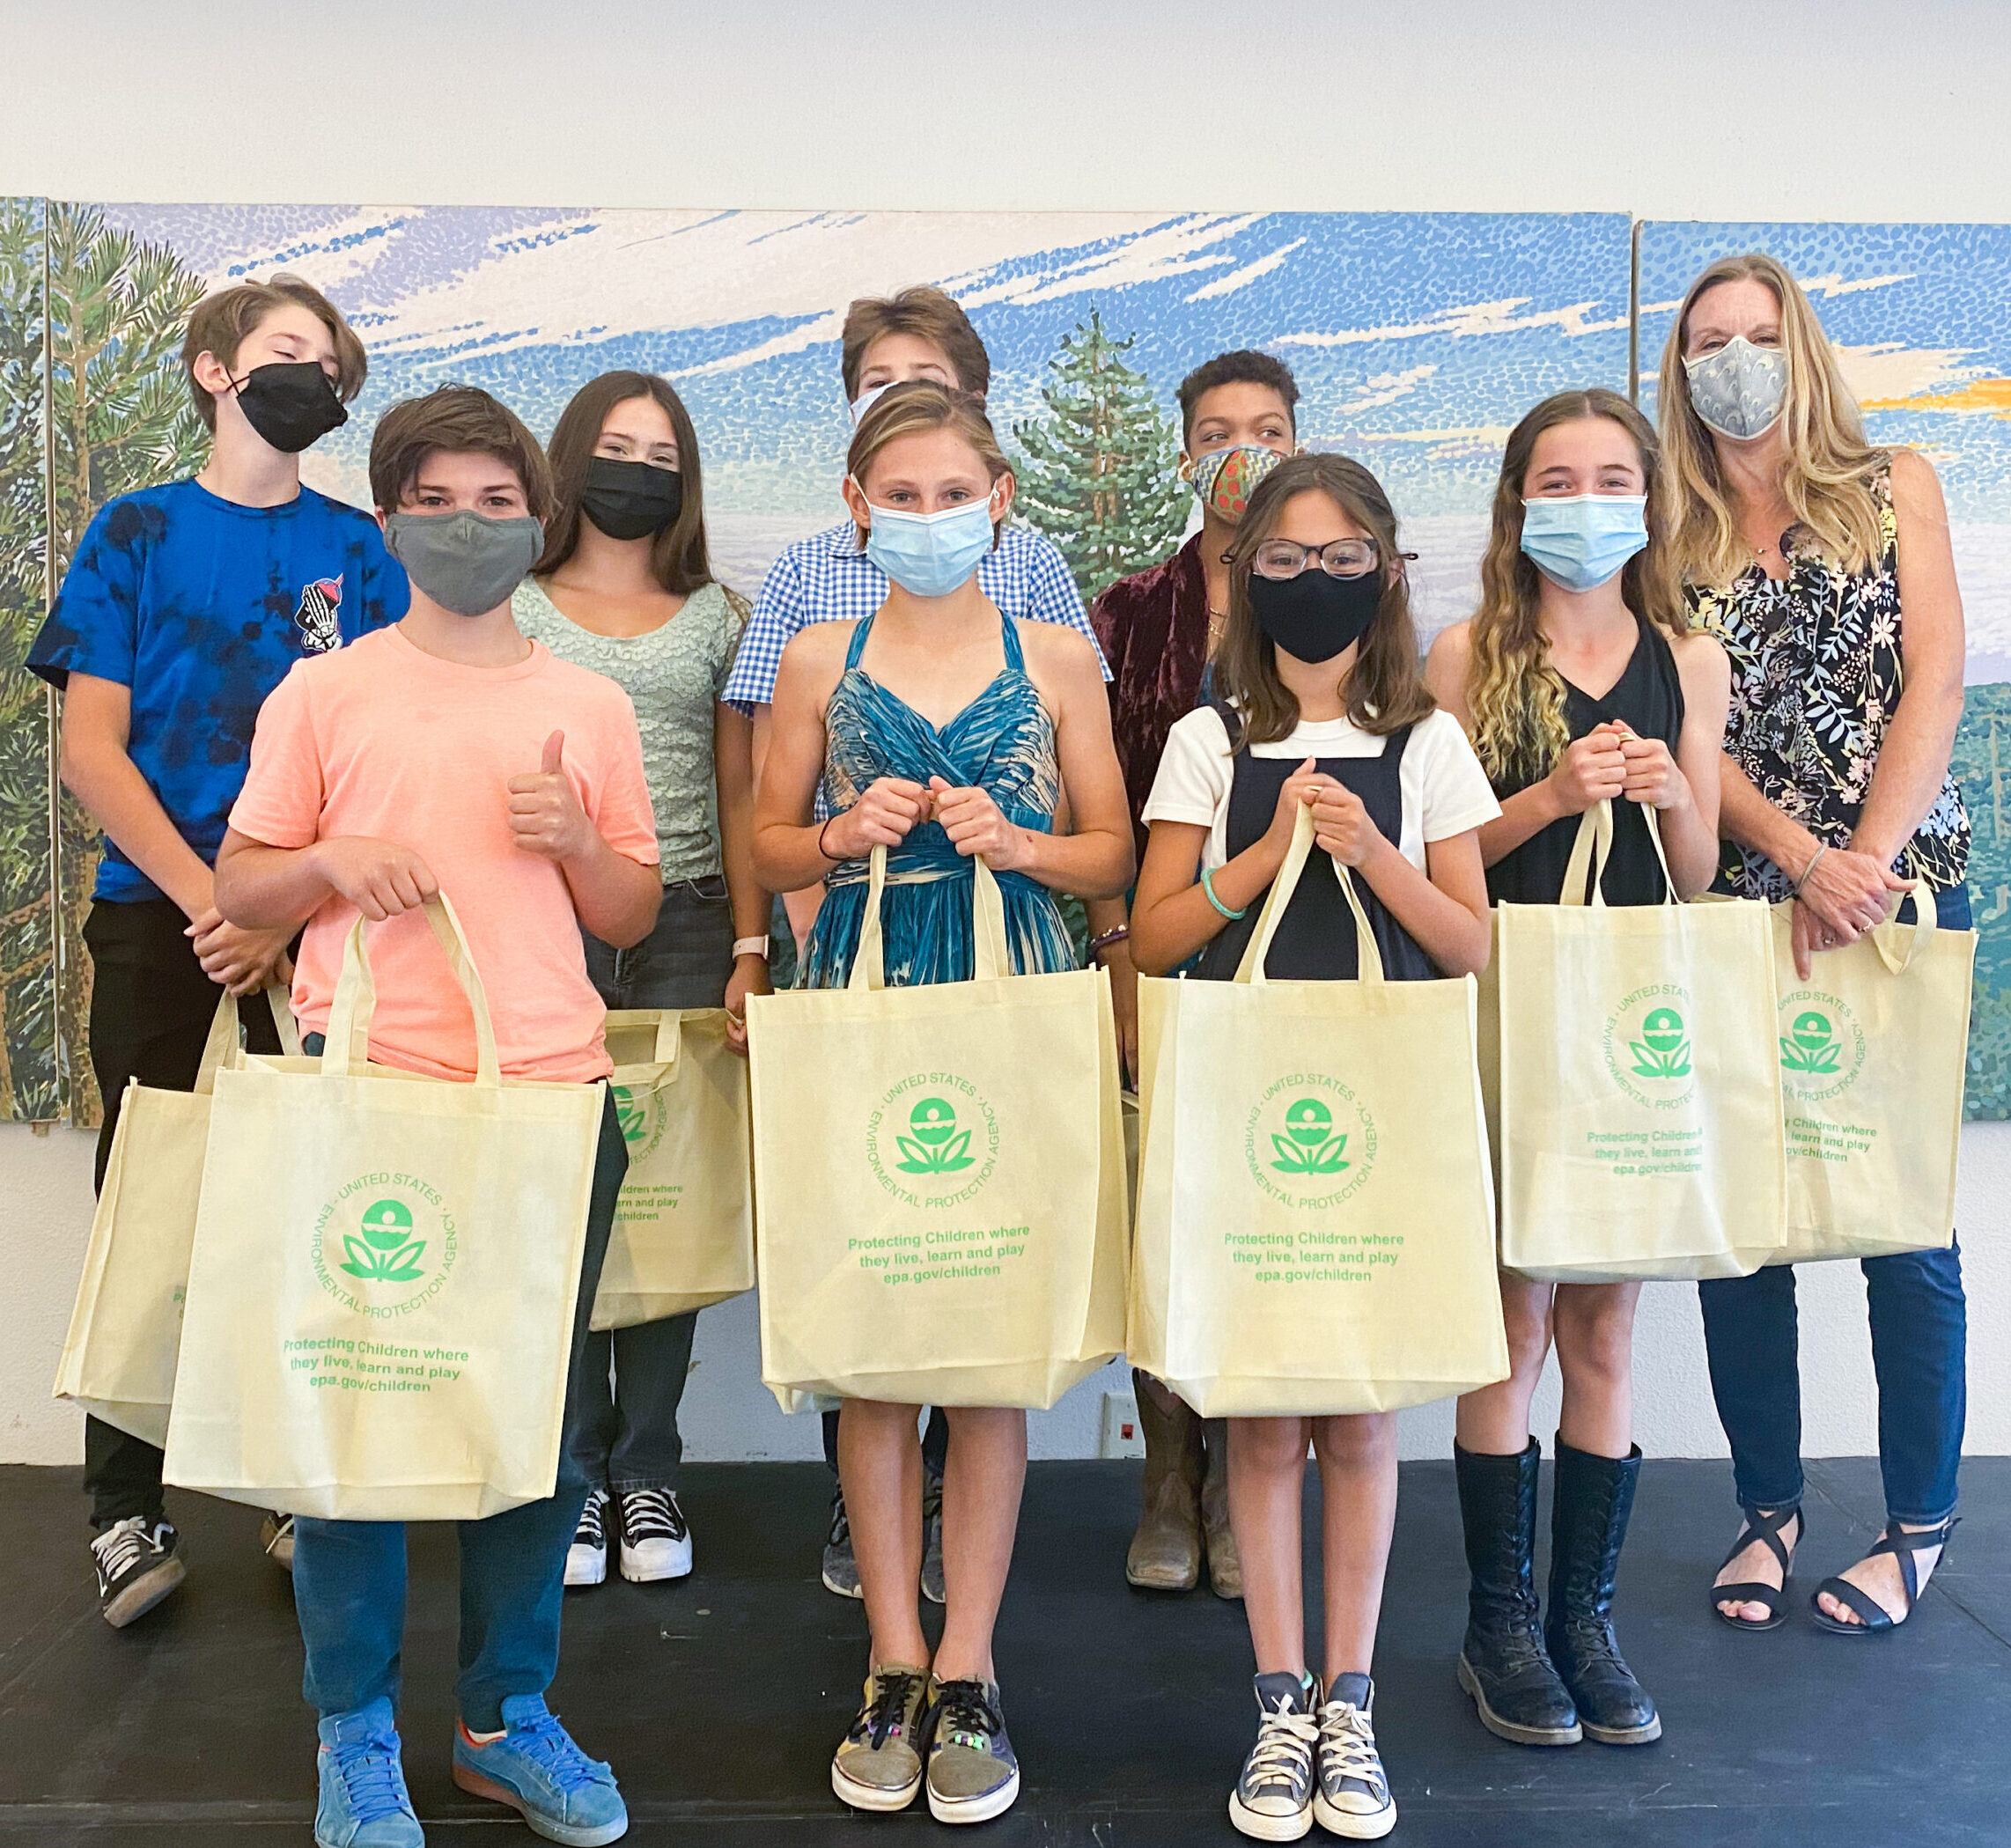 Environmental Protection Agency Honors Students' Shark Conservation Efforts